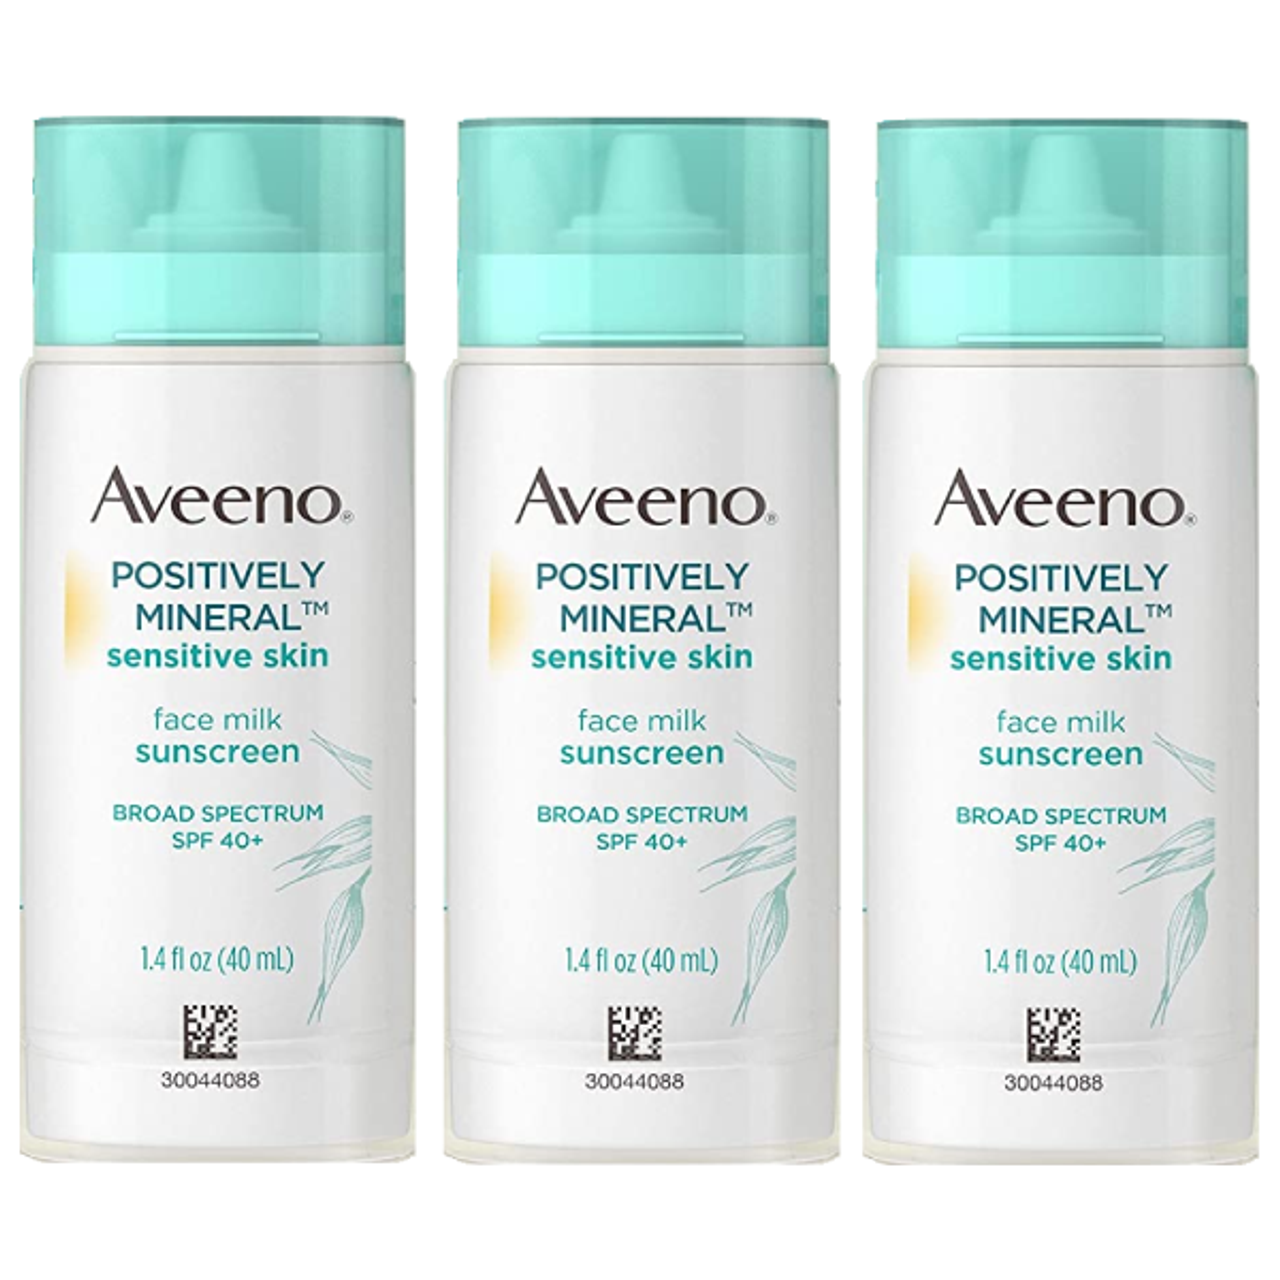 Aveeno Positively Mineral Sensitive Skin SPF 40 Sunscreen: 3 Pack! .99 at UntilGone!